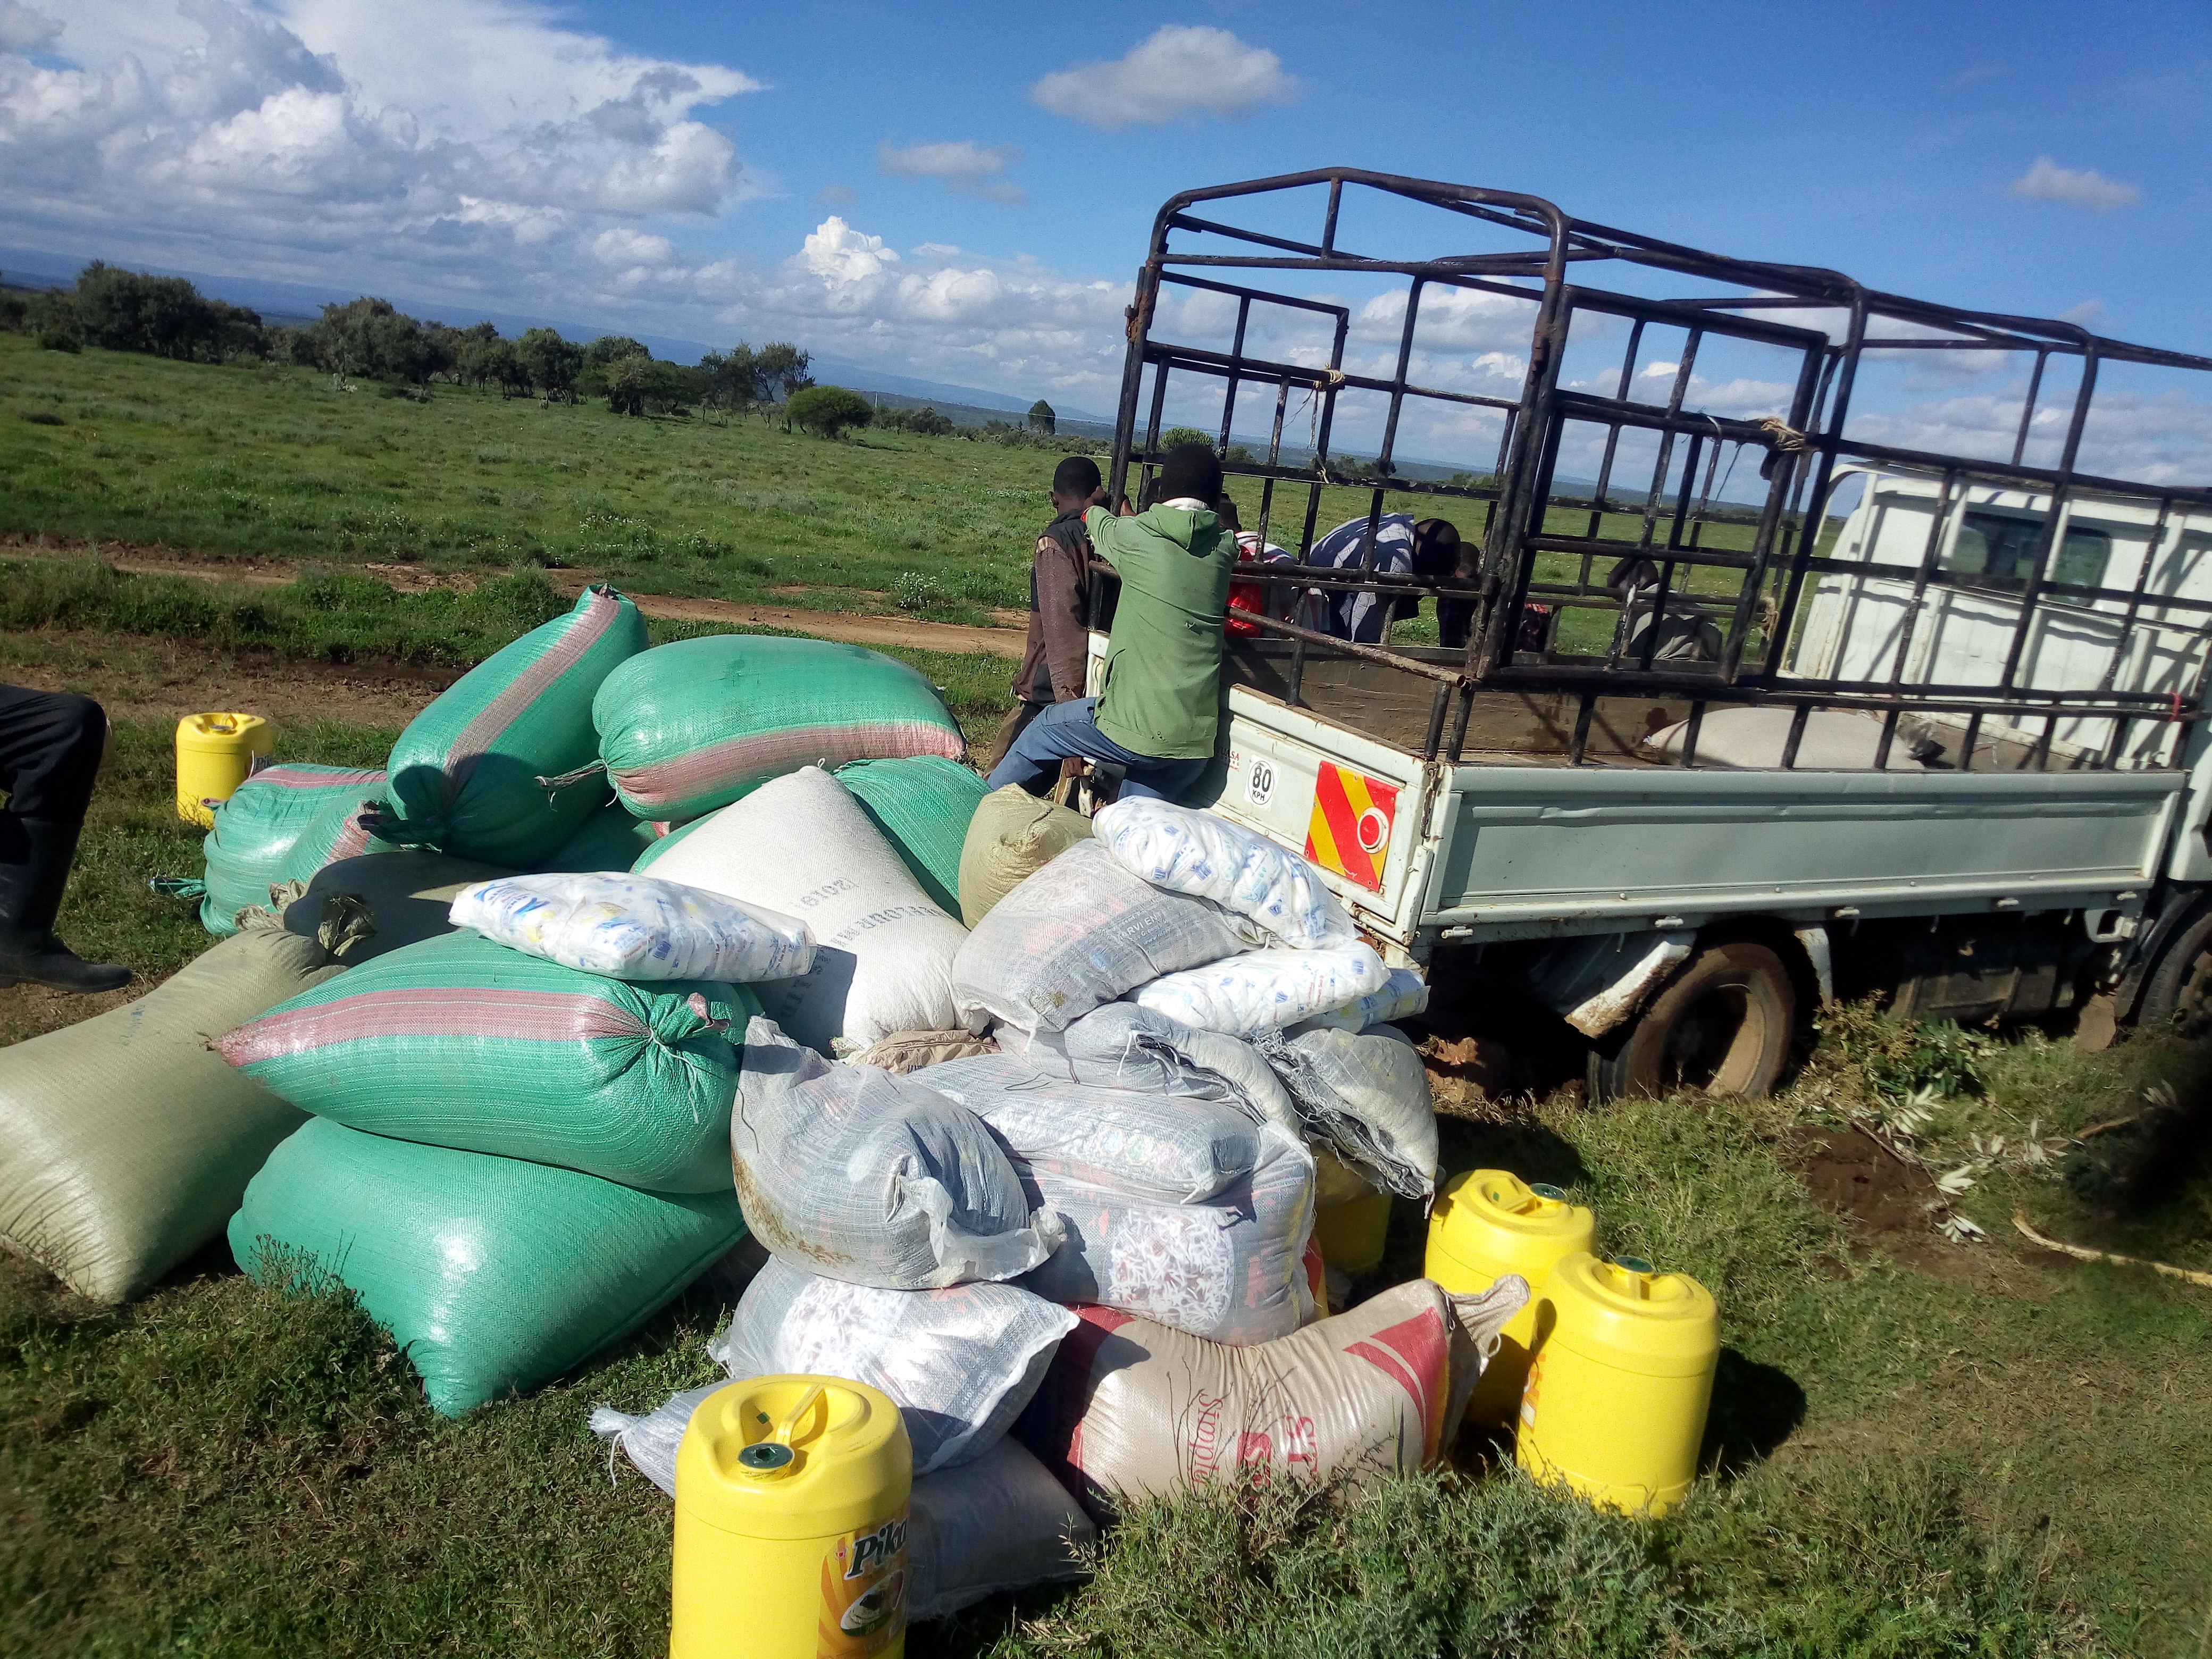 COVID-19 cases climb in Kenya; Christians respond to community needs